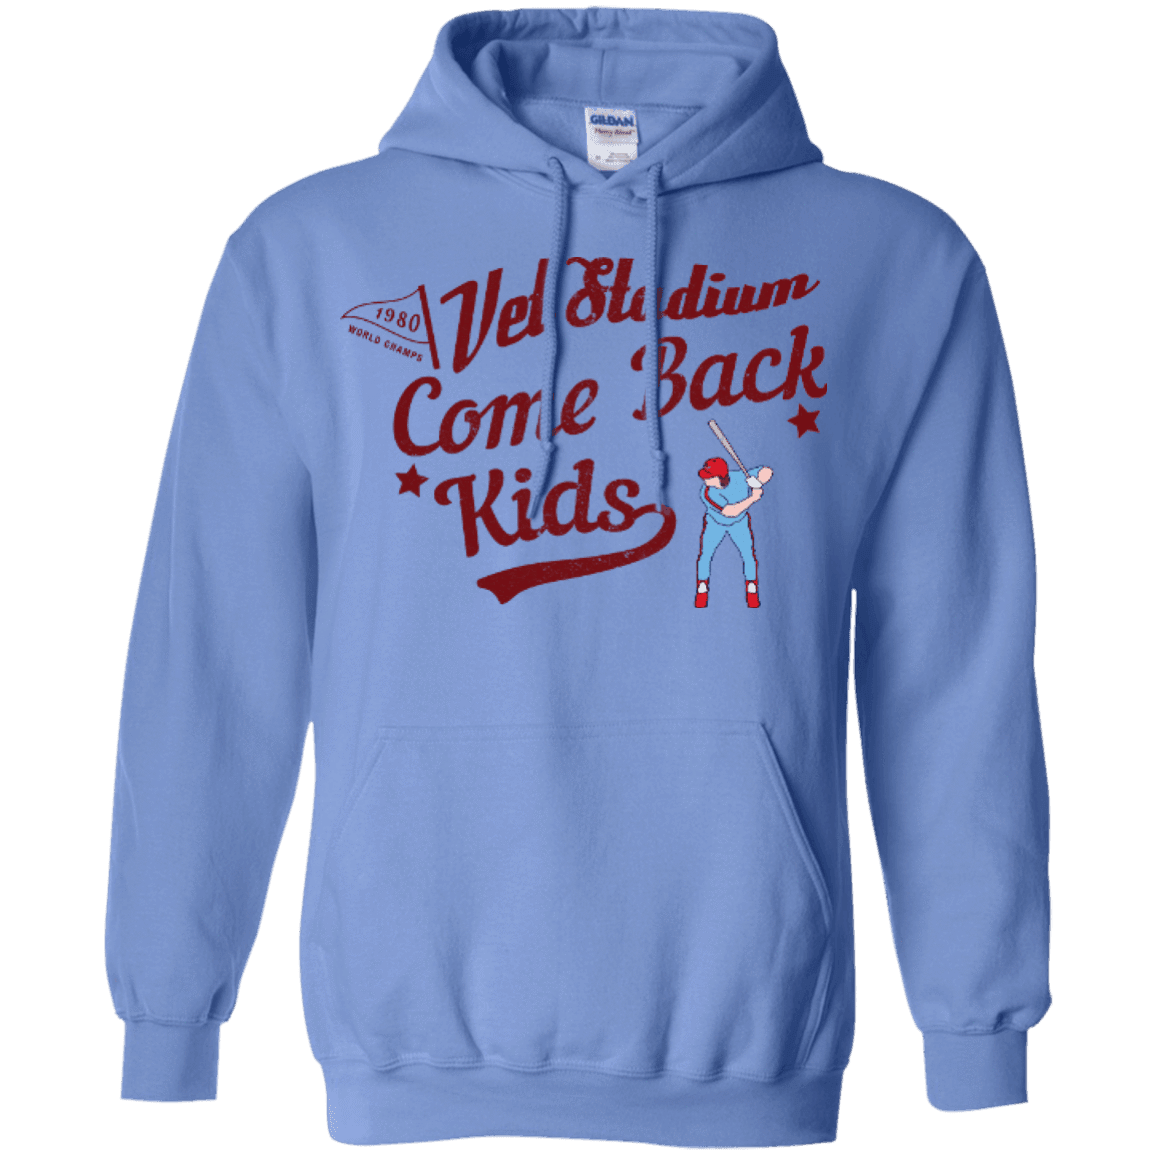 1980 Come Back Kids Pullover Hoodie - Generation T